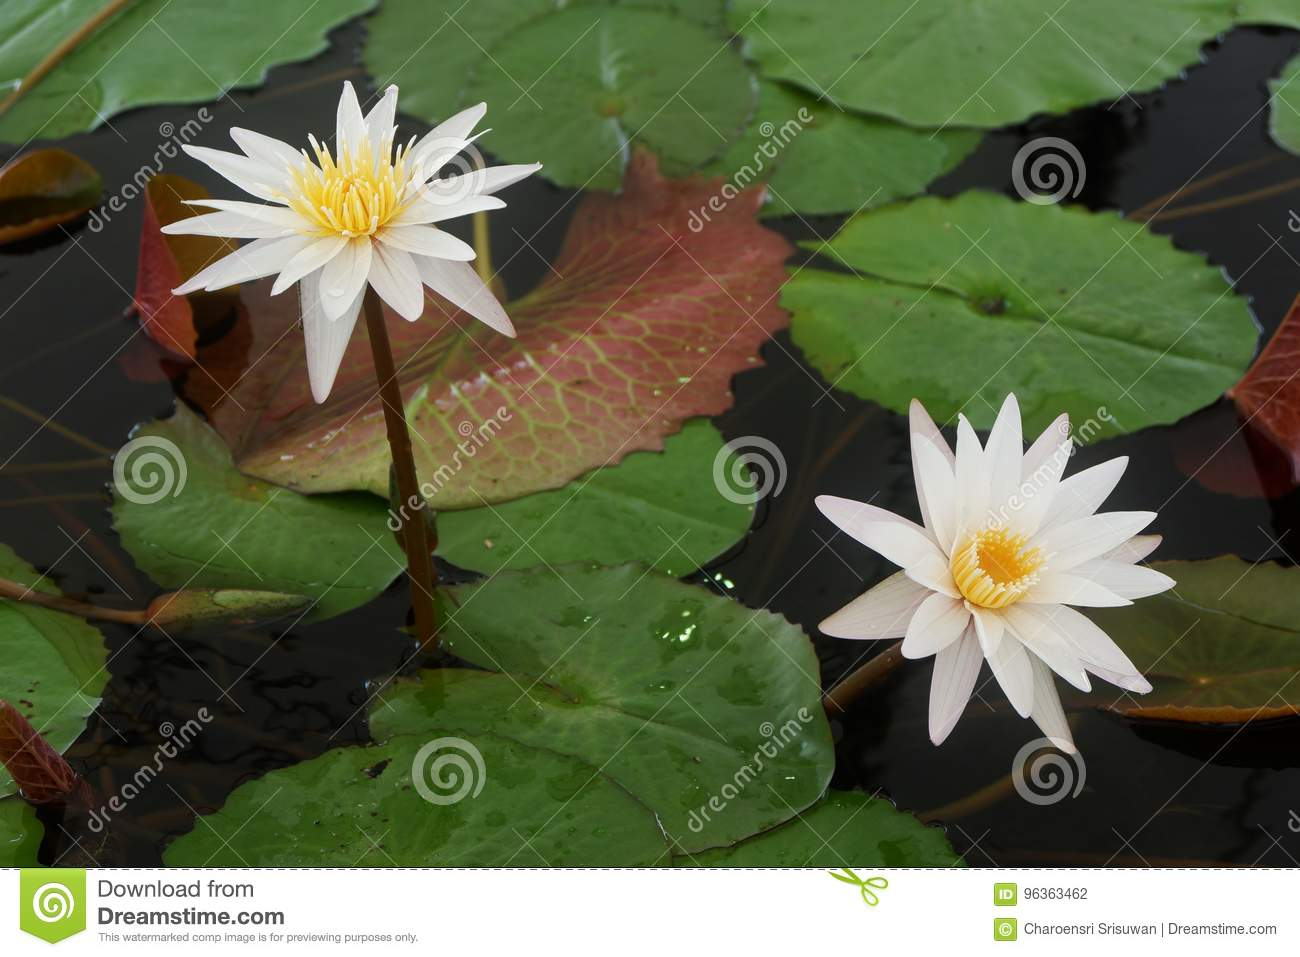 The White Lotus Flower And Pink Lotus Flower Are Meaning Purity And